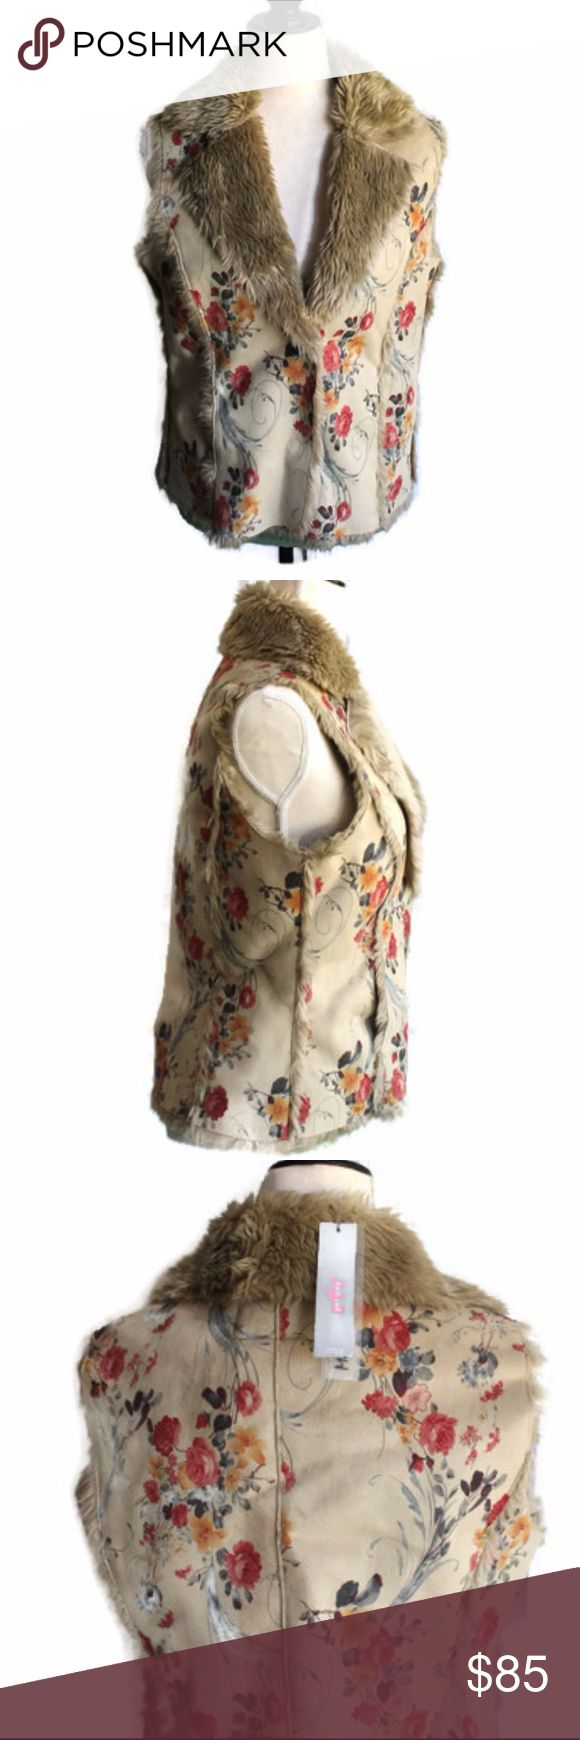 "Per Una Faux Fur Vest-Sz S Per Una by Marks & Spencer Faux Fur Vest Size: S Snap Closure Chest: 19"" across Length: 23"" Shell: 100% Polyester Backing: 79% Acrylic    21%  polyester Brand New with Tags! per una Jackets & Coats Vests"